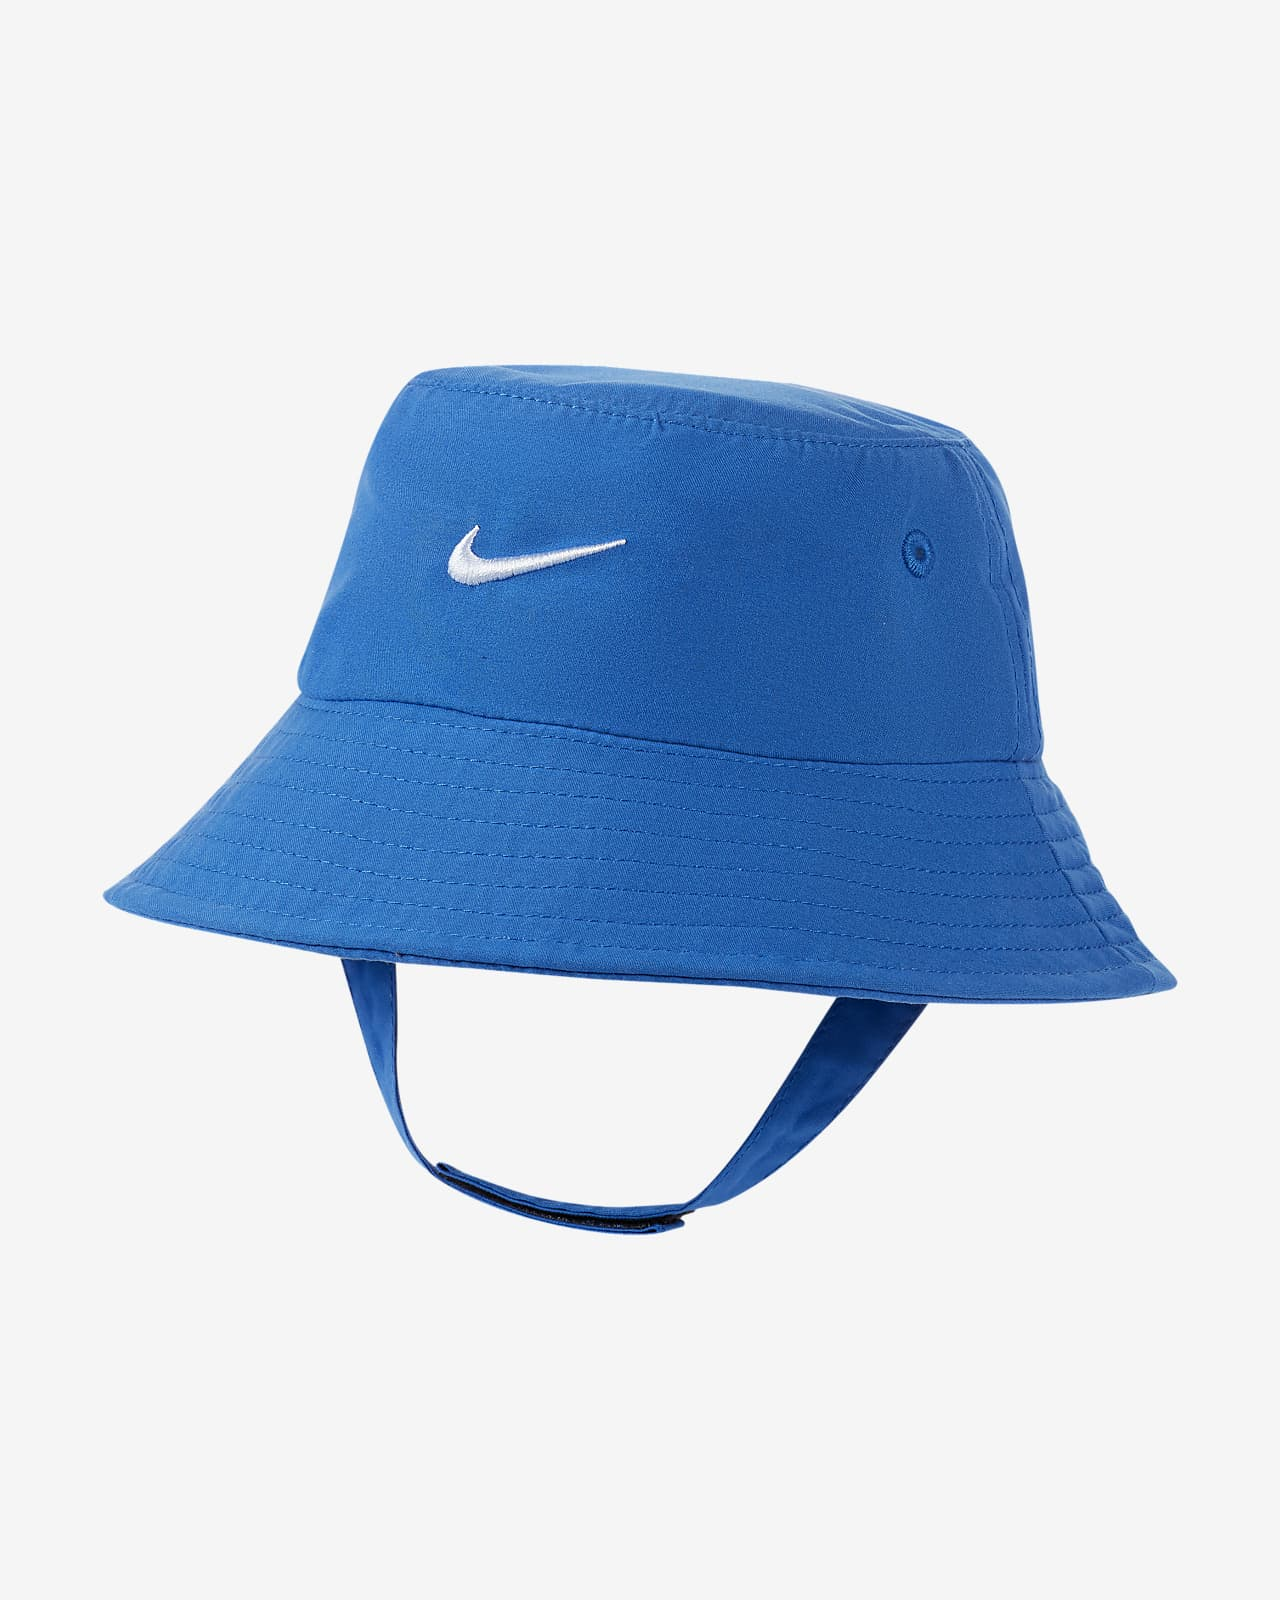 Nike Dri-FIT Baby (12–24M) Bucket Hat